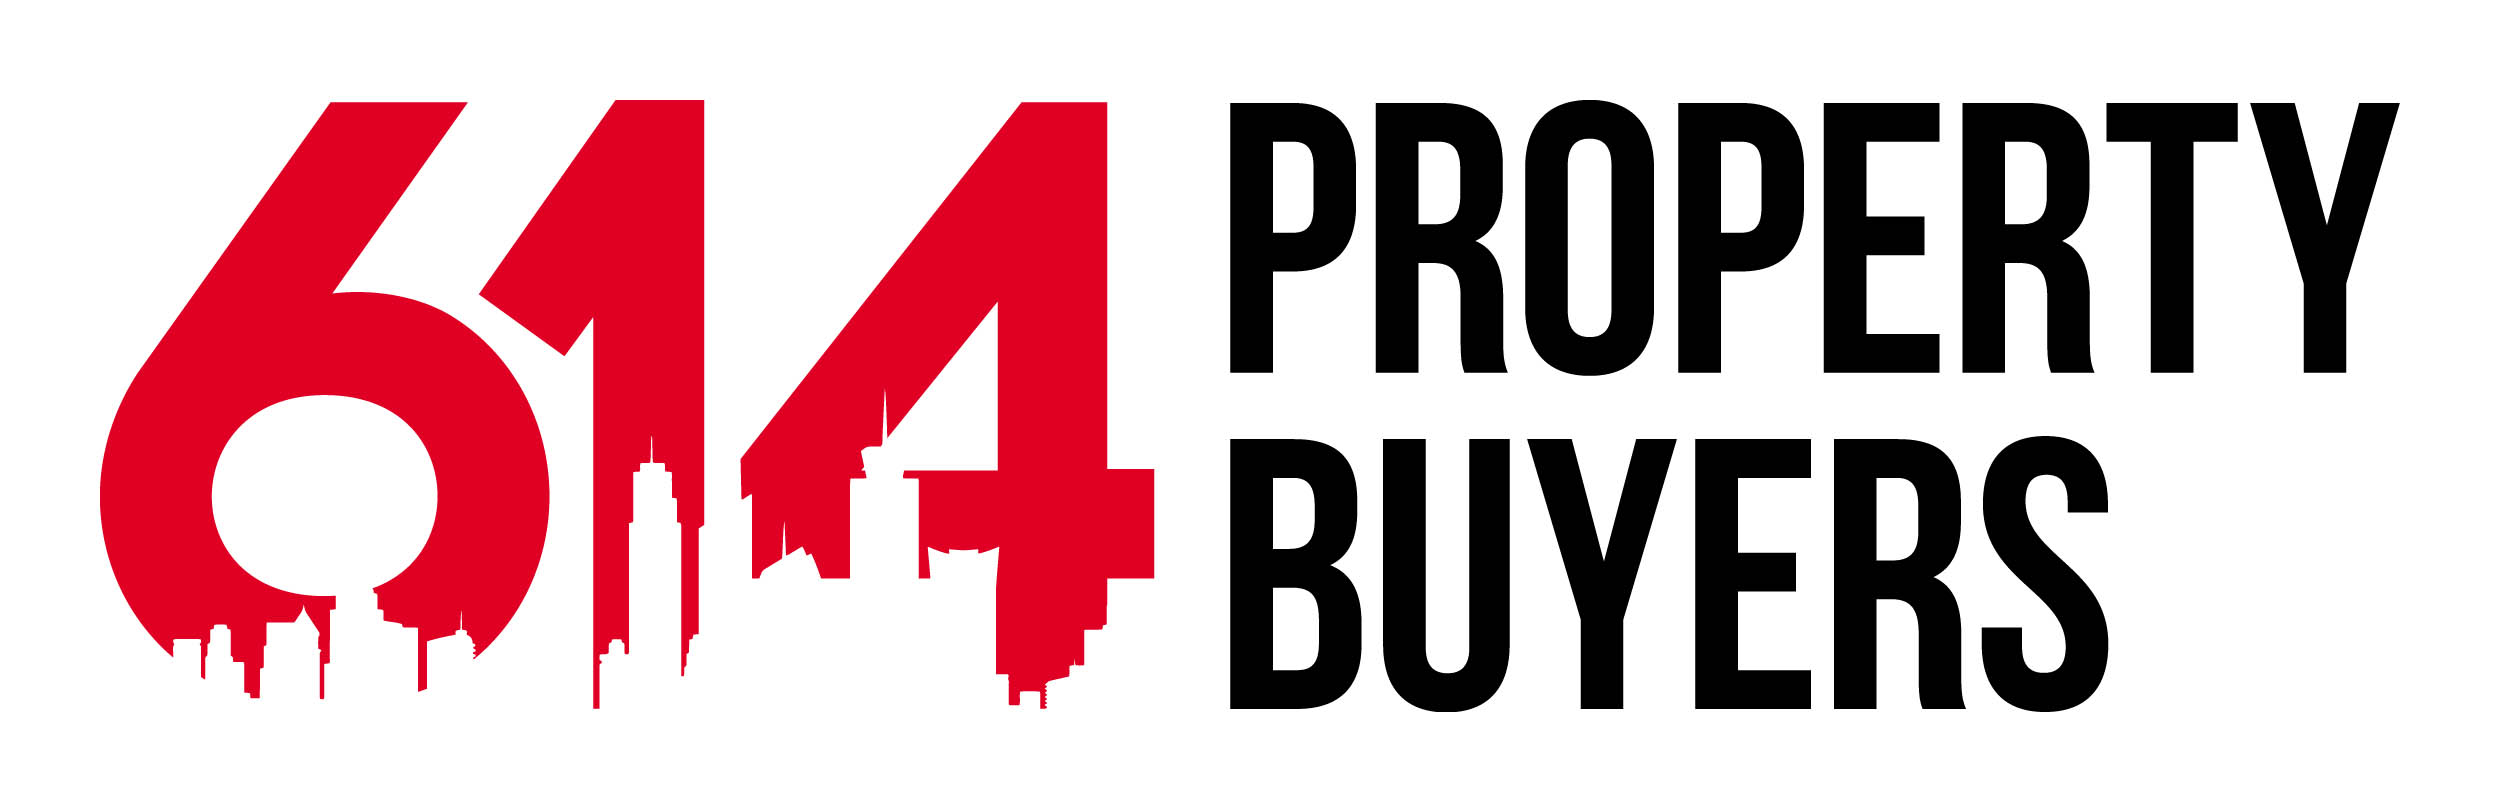 614 Property Buyers Columbus